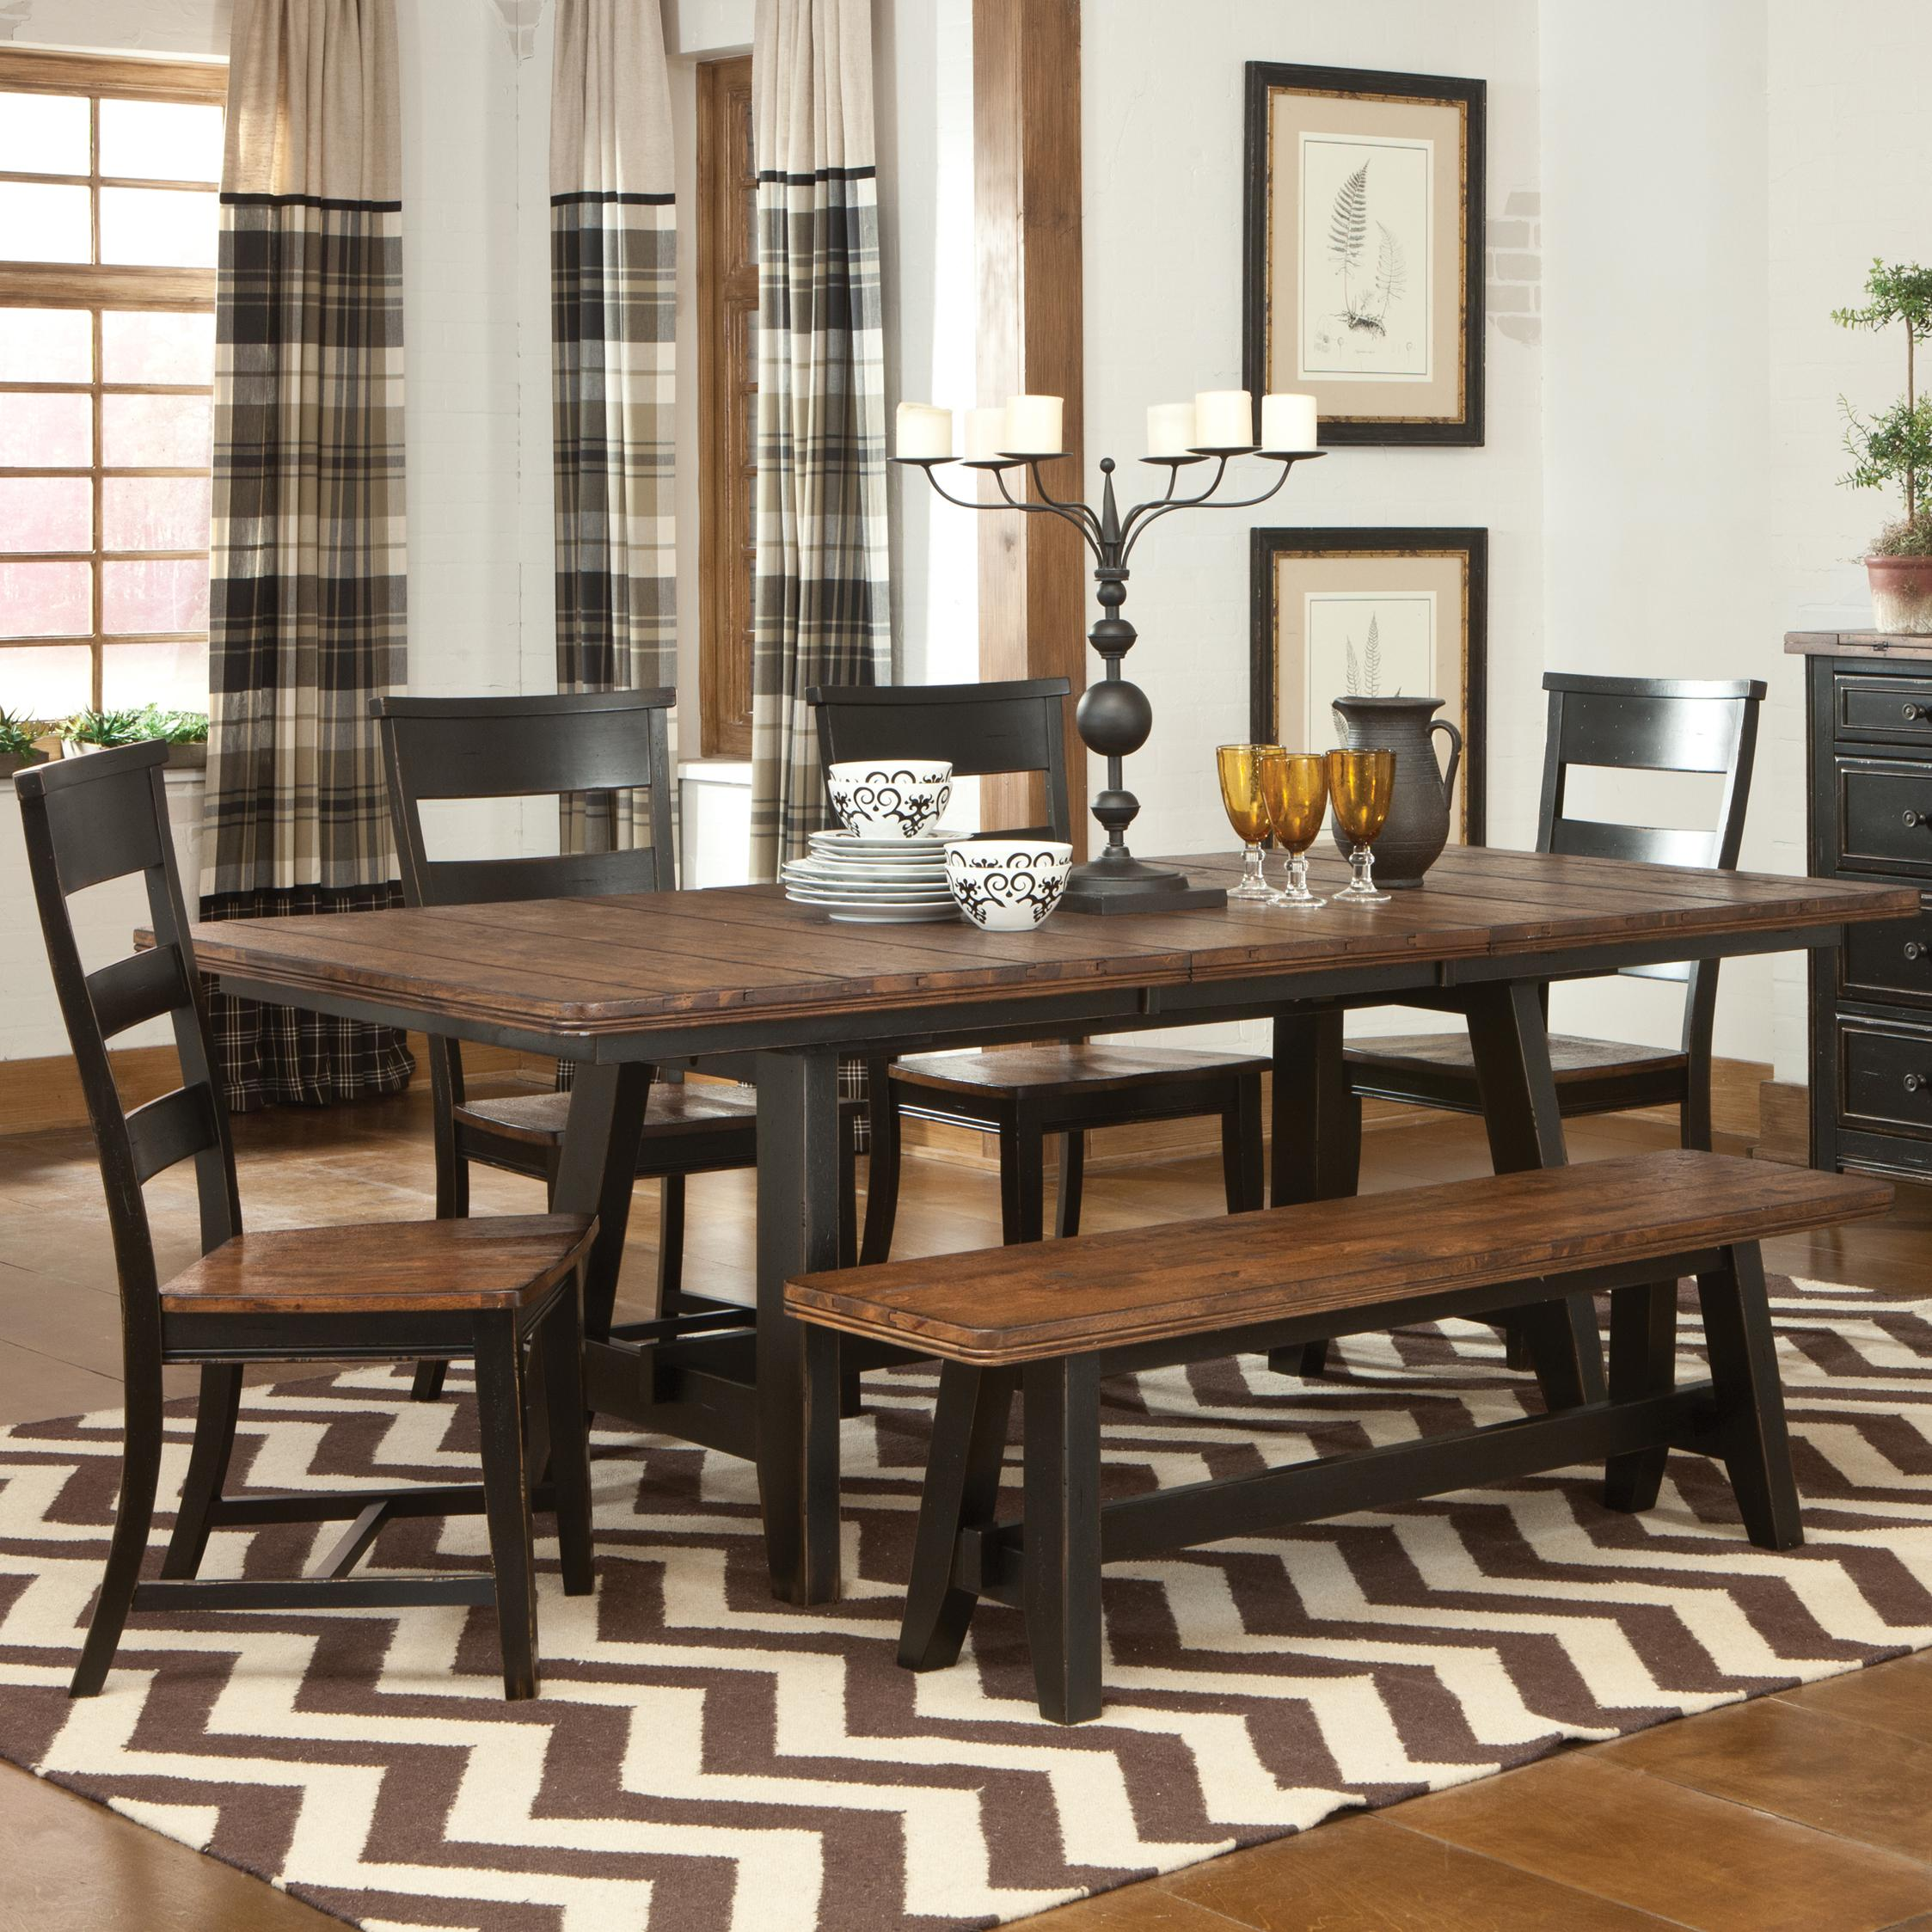 Most Comfortable Dining Chairs for Your Longer Dining  : classic black brown wooden ladder back most comfortable dining room wooden dining table classic black candle yellow glasses white motive plates two tones motive carpet from homesfeed.com size 2247 x 2247 jpeg 566kB